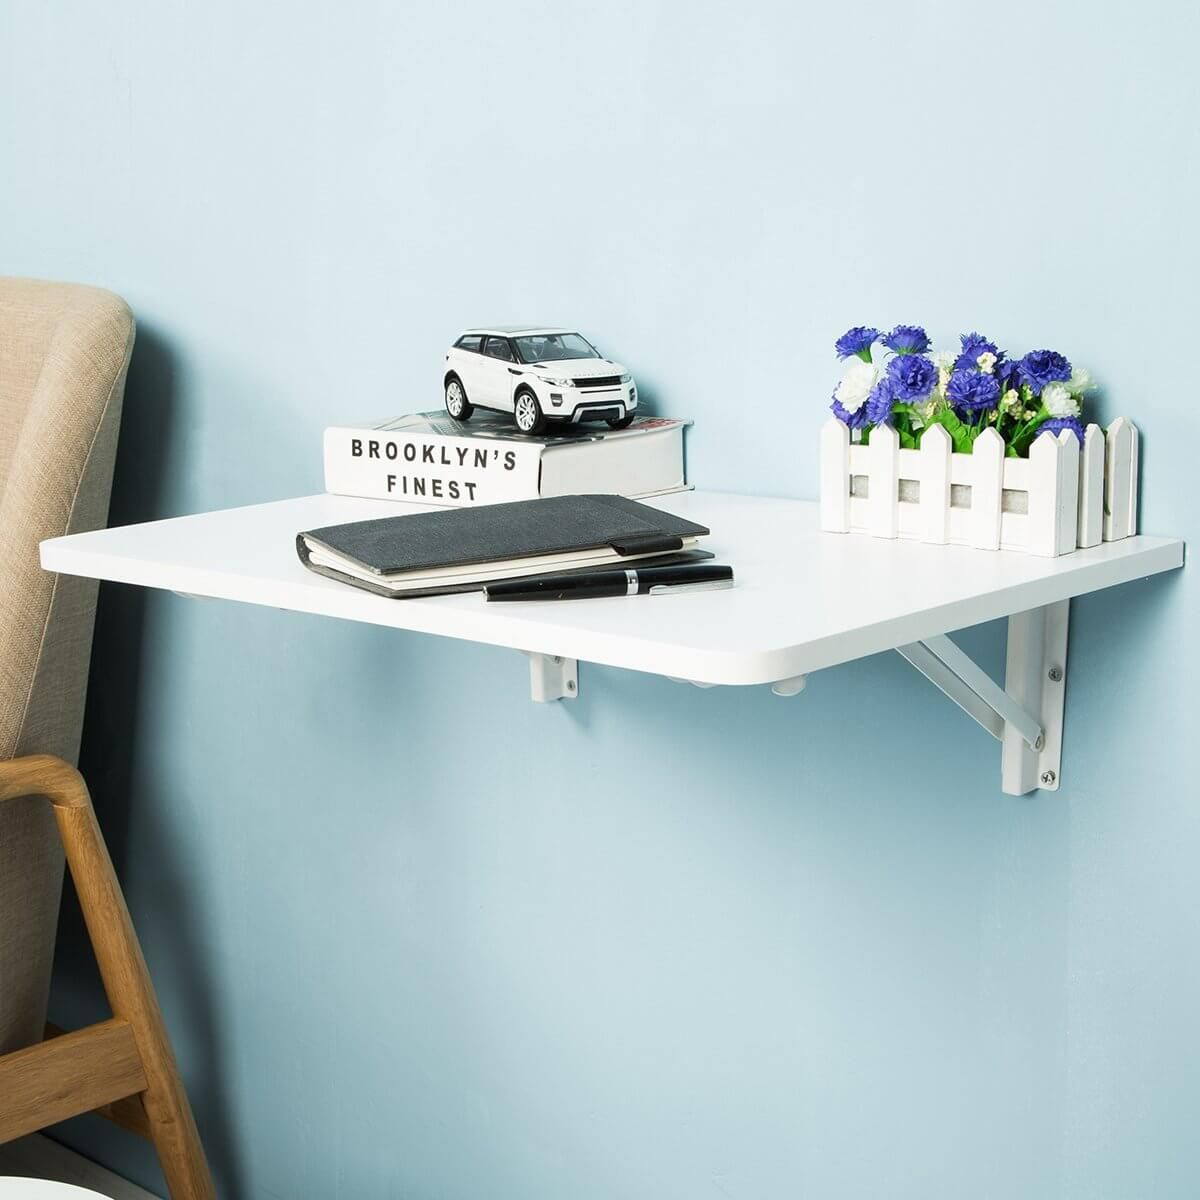 21 Practical Wall Desk Ideas For Serious Space Saving In 2020 Wall Mounted Folding Table Wall Mounted Table Wall Desk